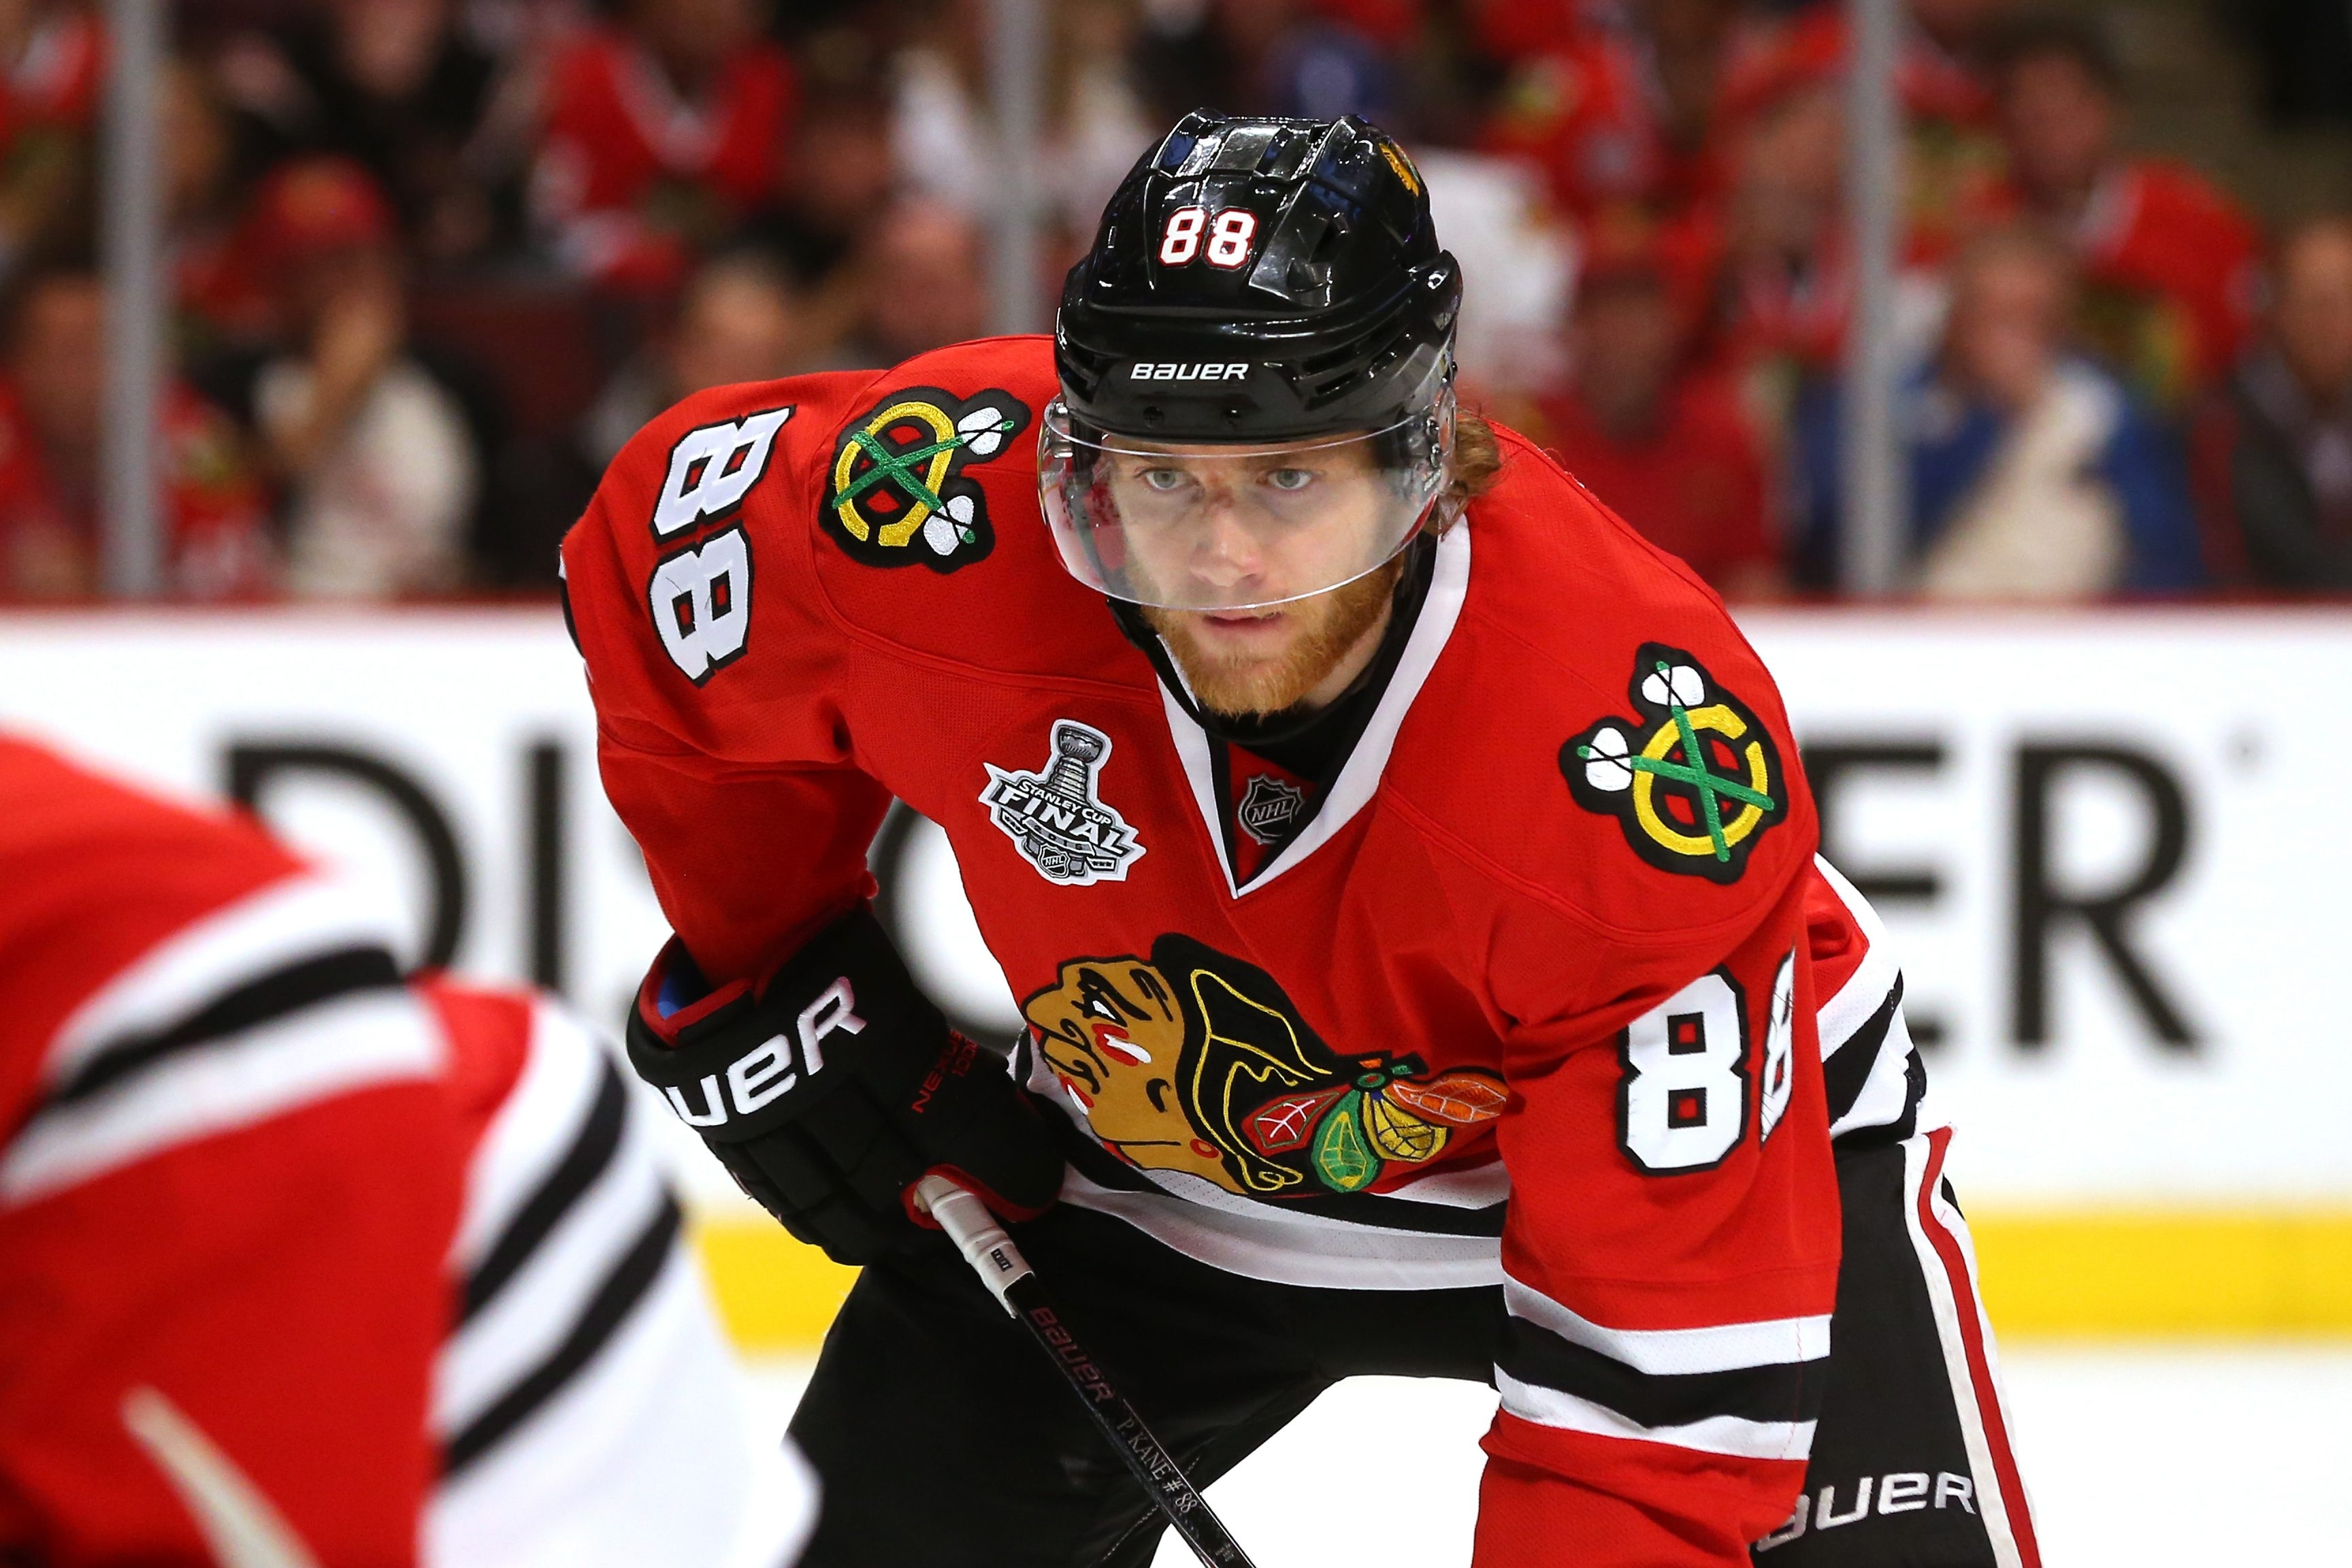 For Patrick Kane, legal uncertainty hurts status as brand.